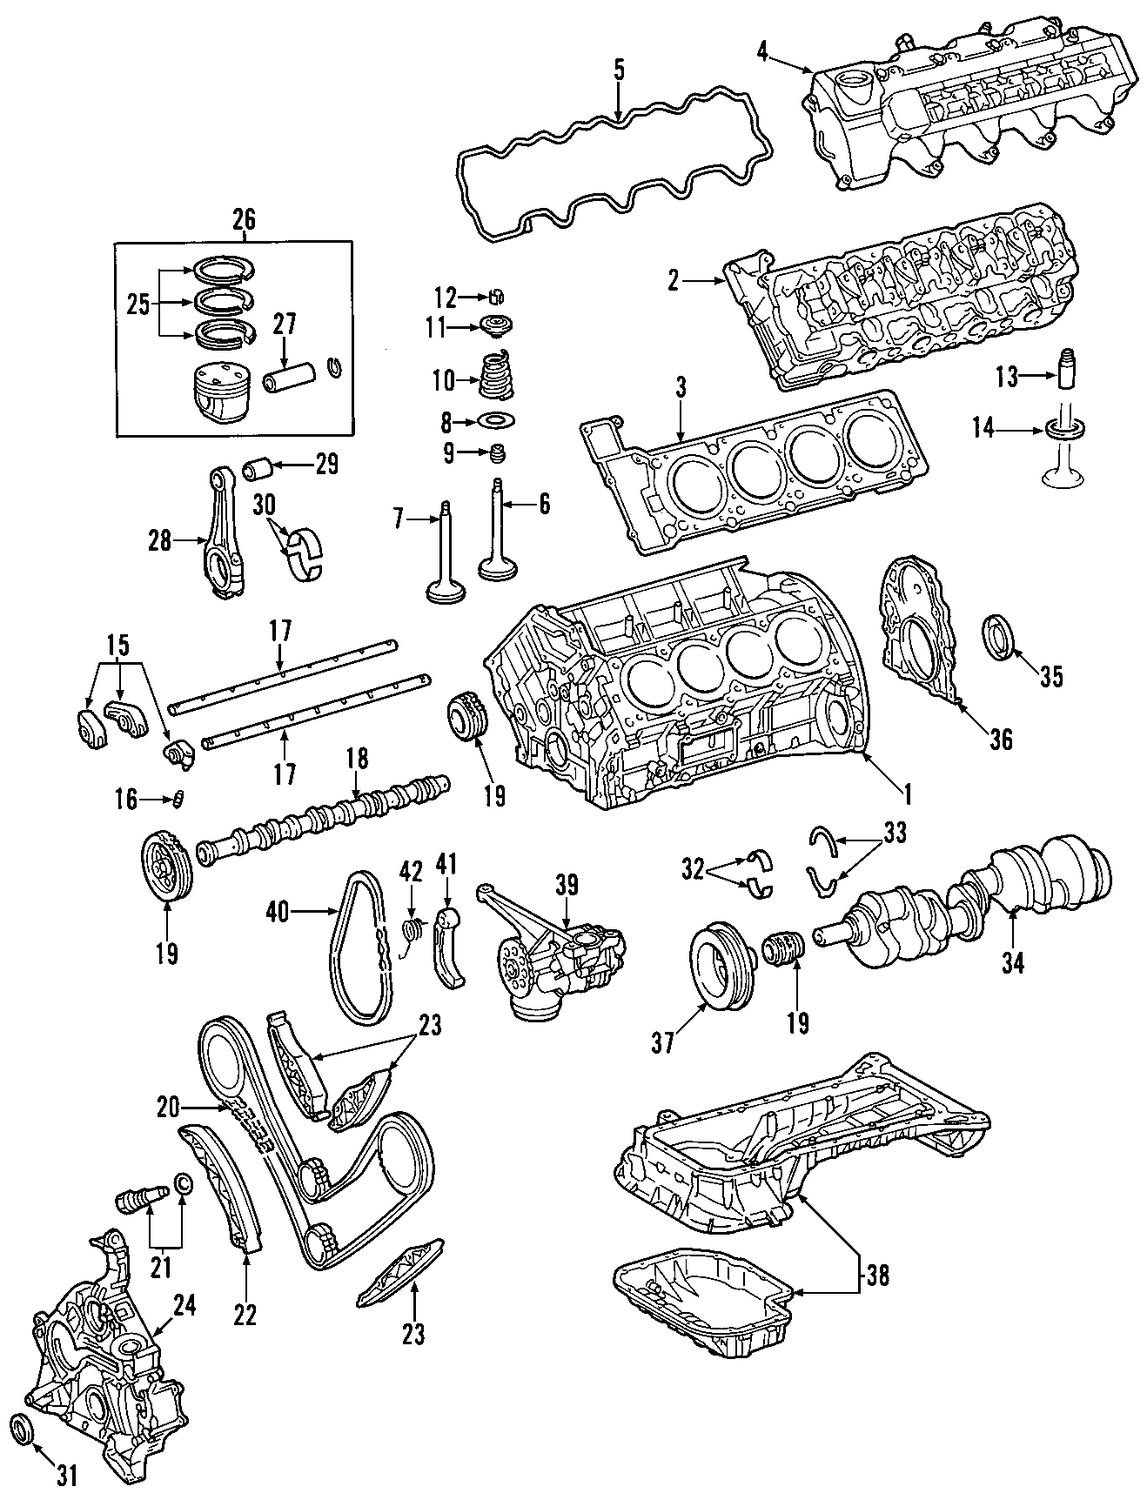 2006 mercedes cls 500 fuse box diagram